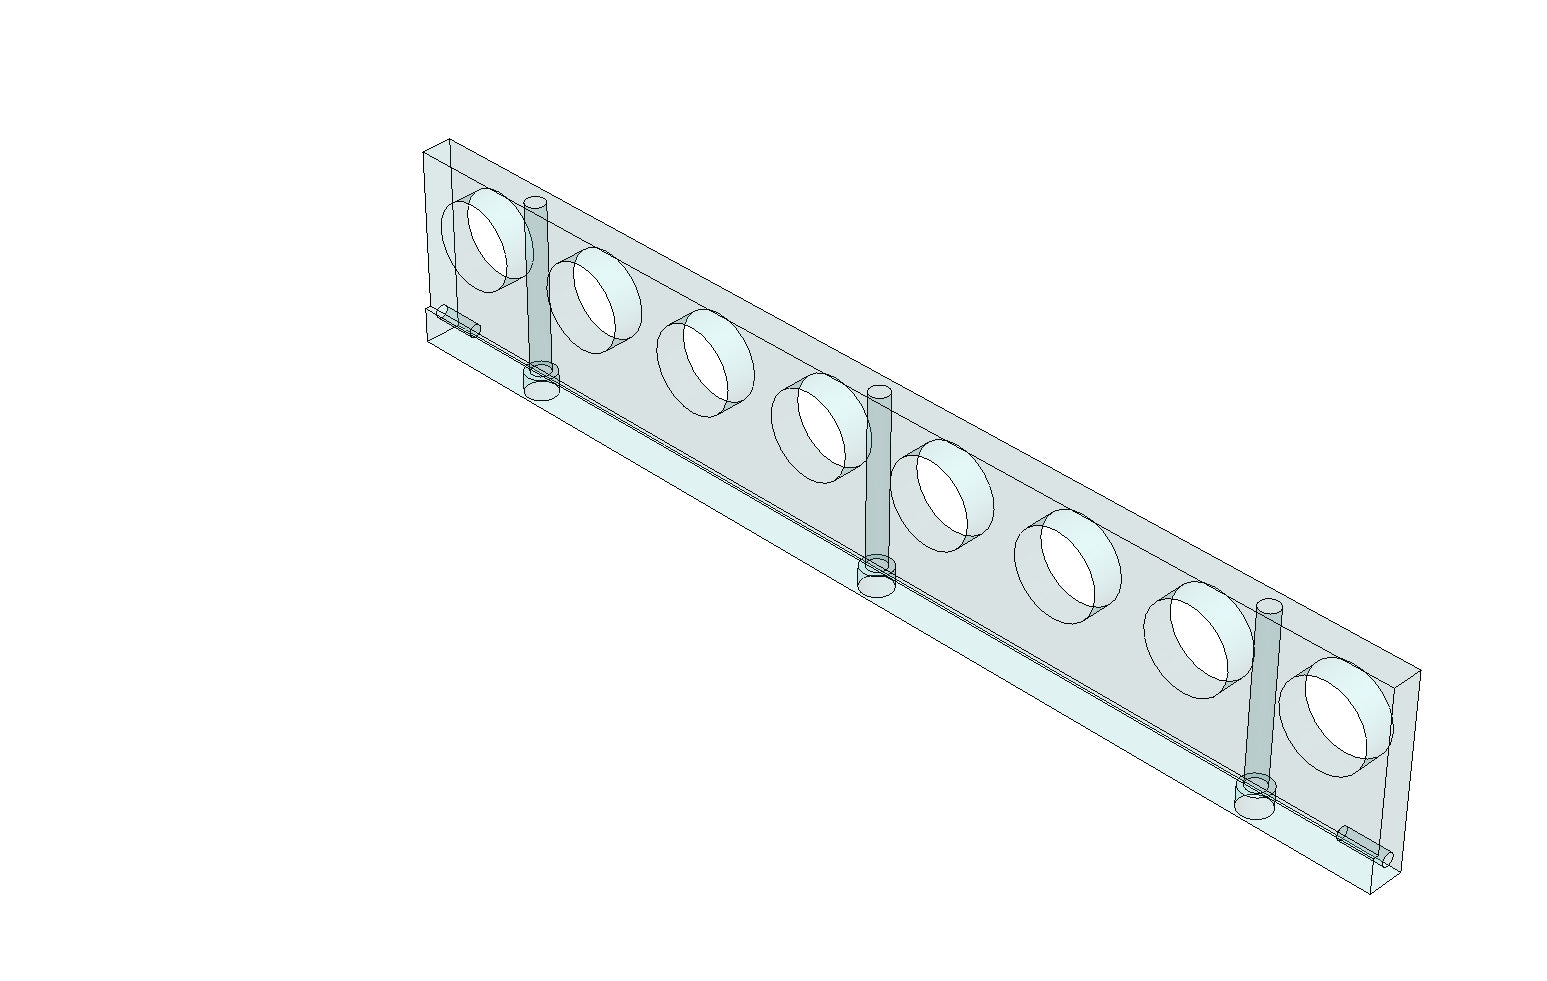 TC6271890A GLASS SUPPORT PLATE - King TC8 Spare Part